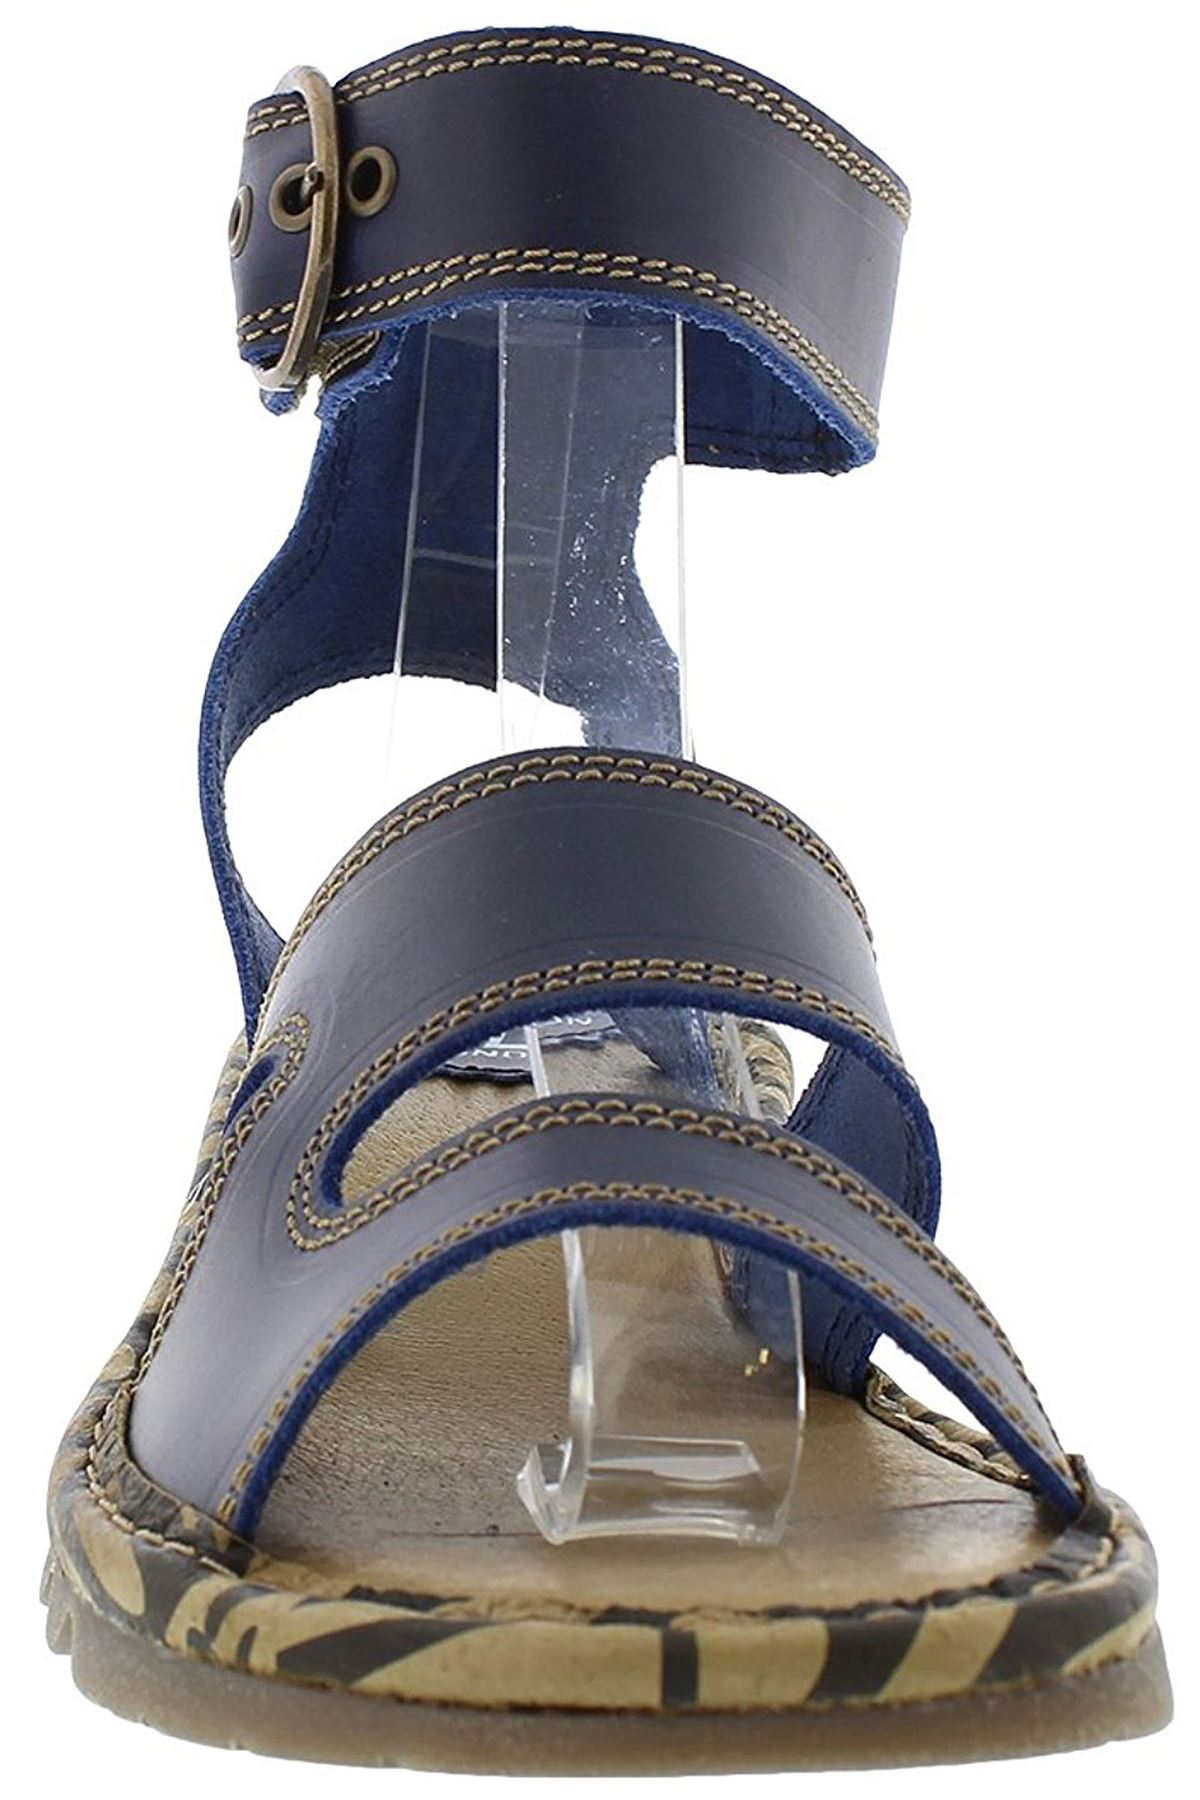 Fly-London-TILY722FLY-Ladies-Strappy-Gladiator-Style-Leather-Wedge-Sandals thumbnail 8